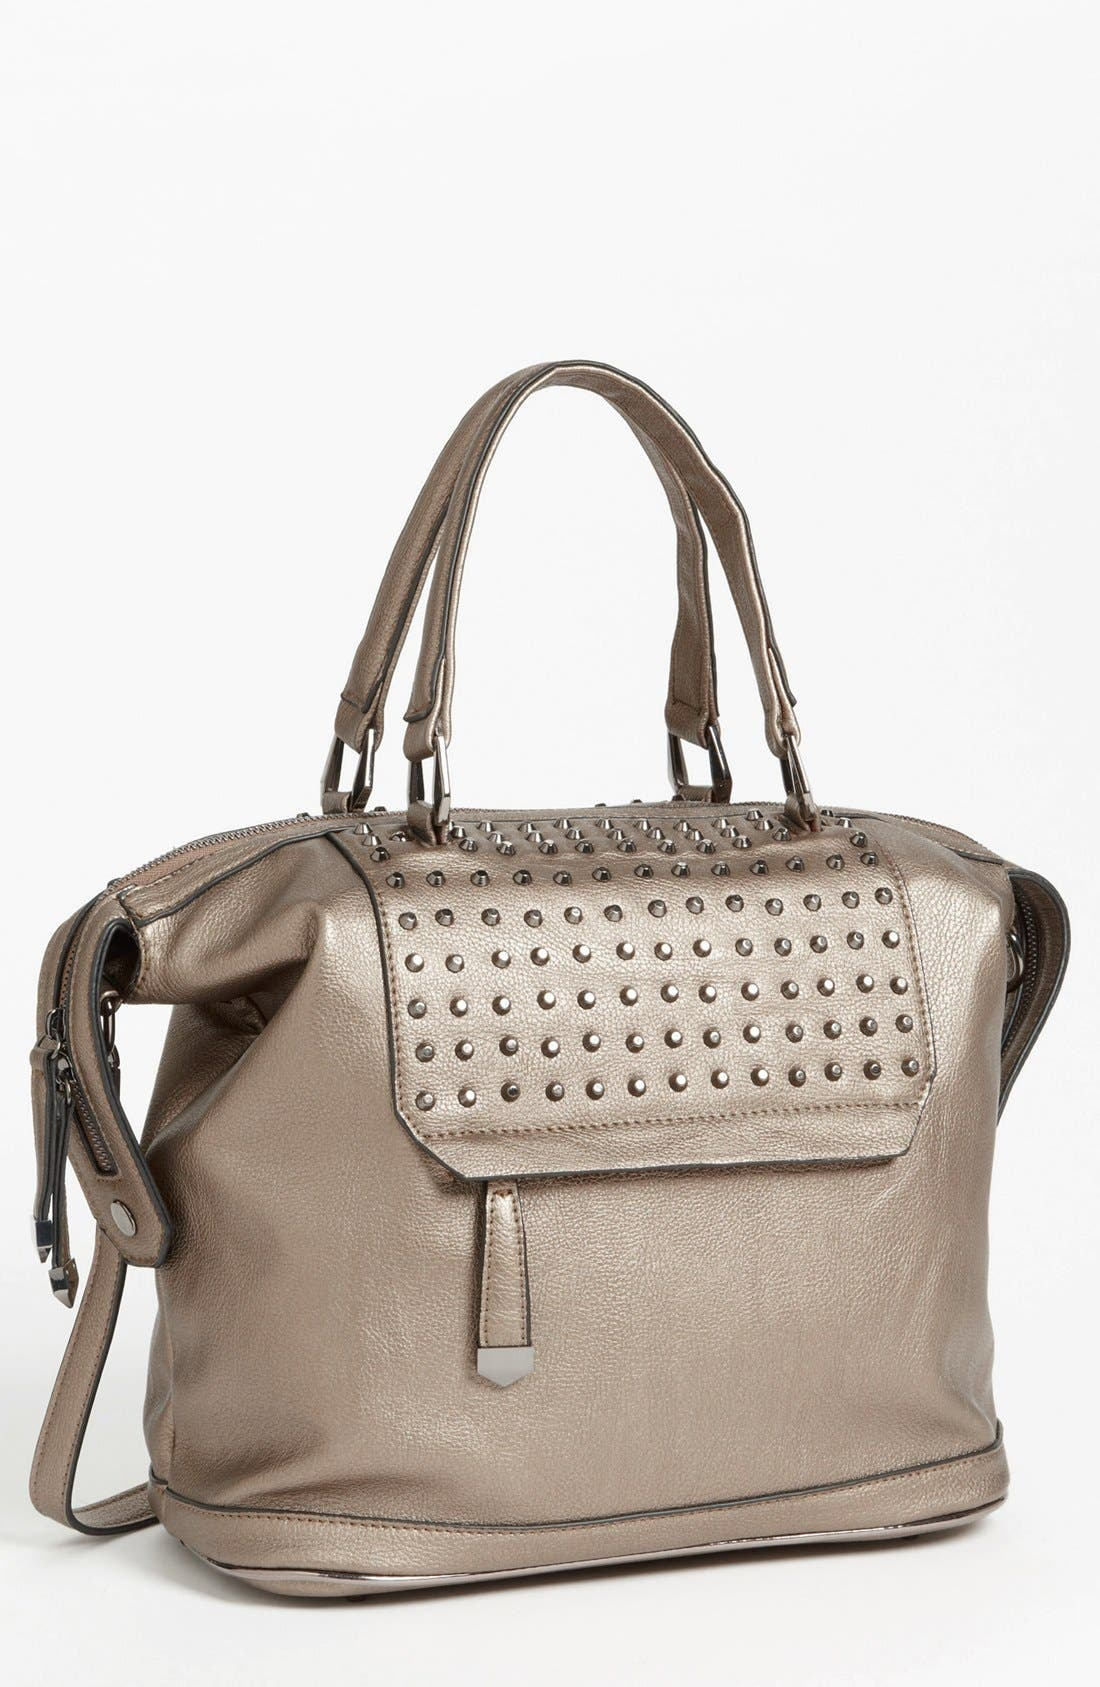 Main Image - POVERTY FLATS by rian Studded Satchel, Large